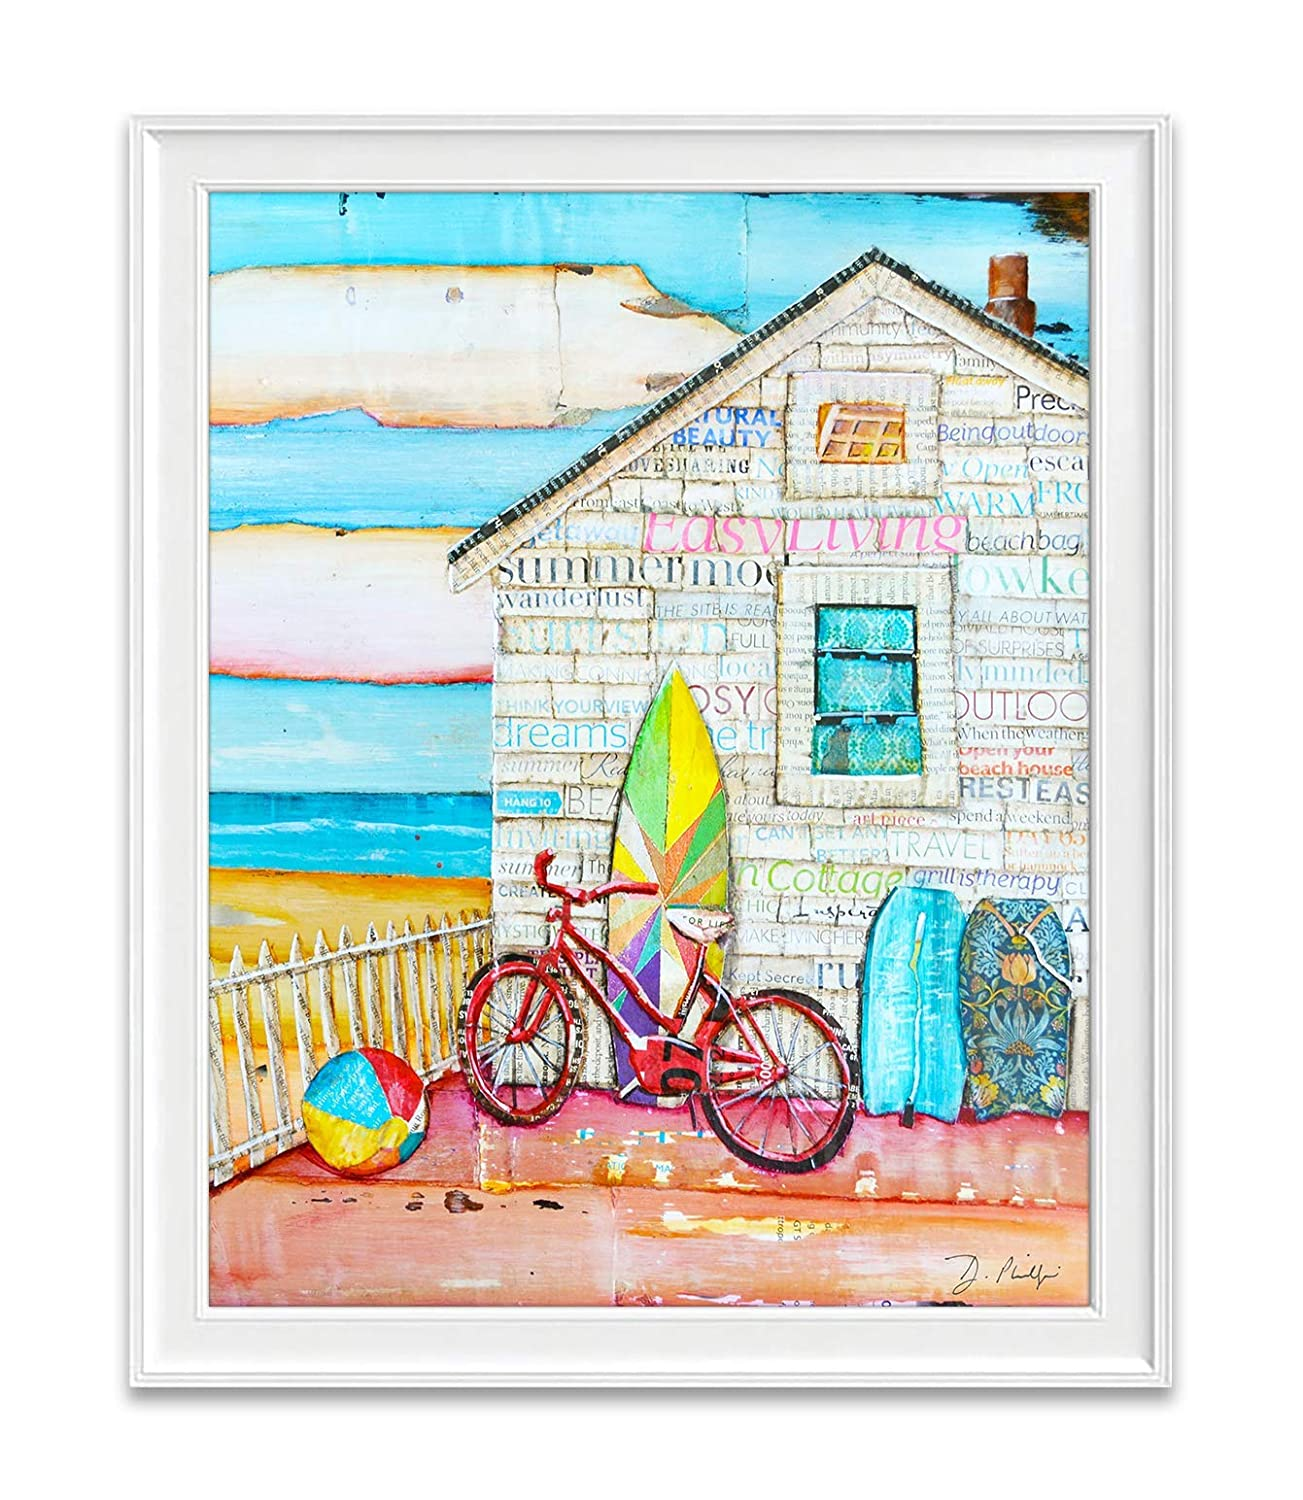 Ain't It Fun, Danny Phillips Art Print, Unframed, Beach House Coastal Vacation Retro Vintage Mixed Media Art Wall and Home Decor Poster, 8x10 Inches